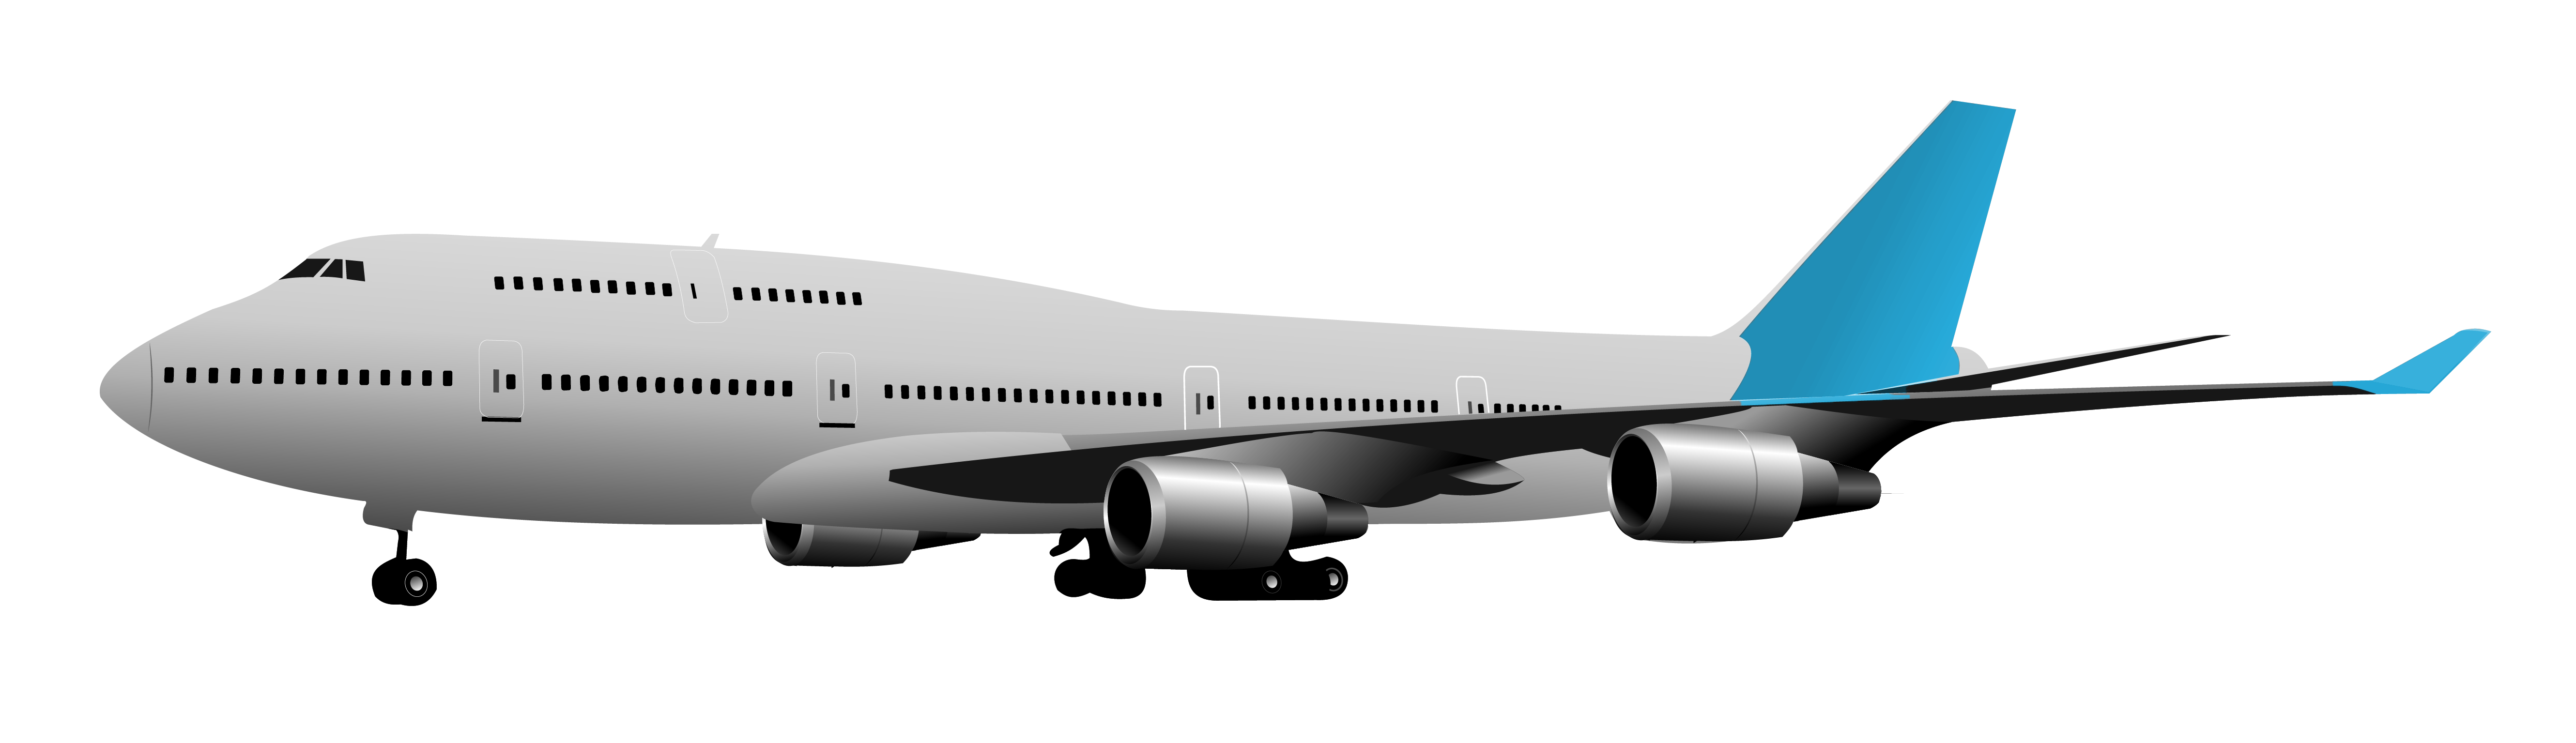 boeing airplane clipart clipground